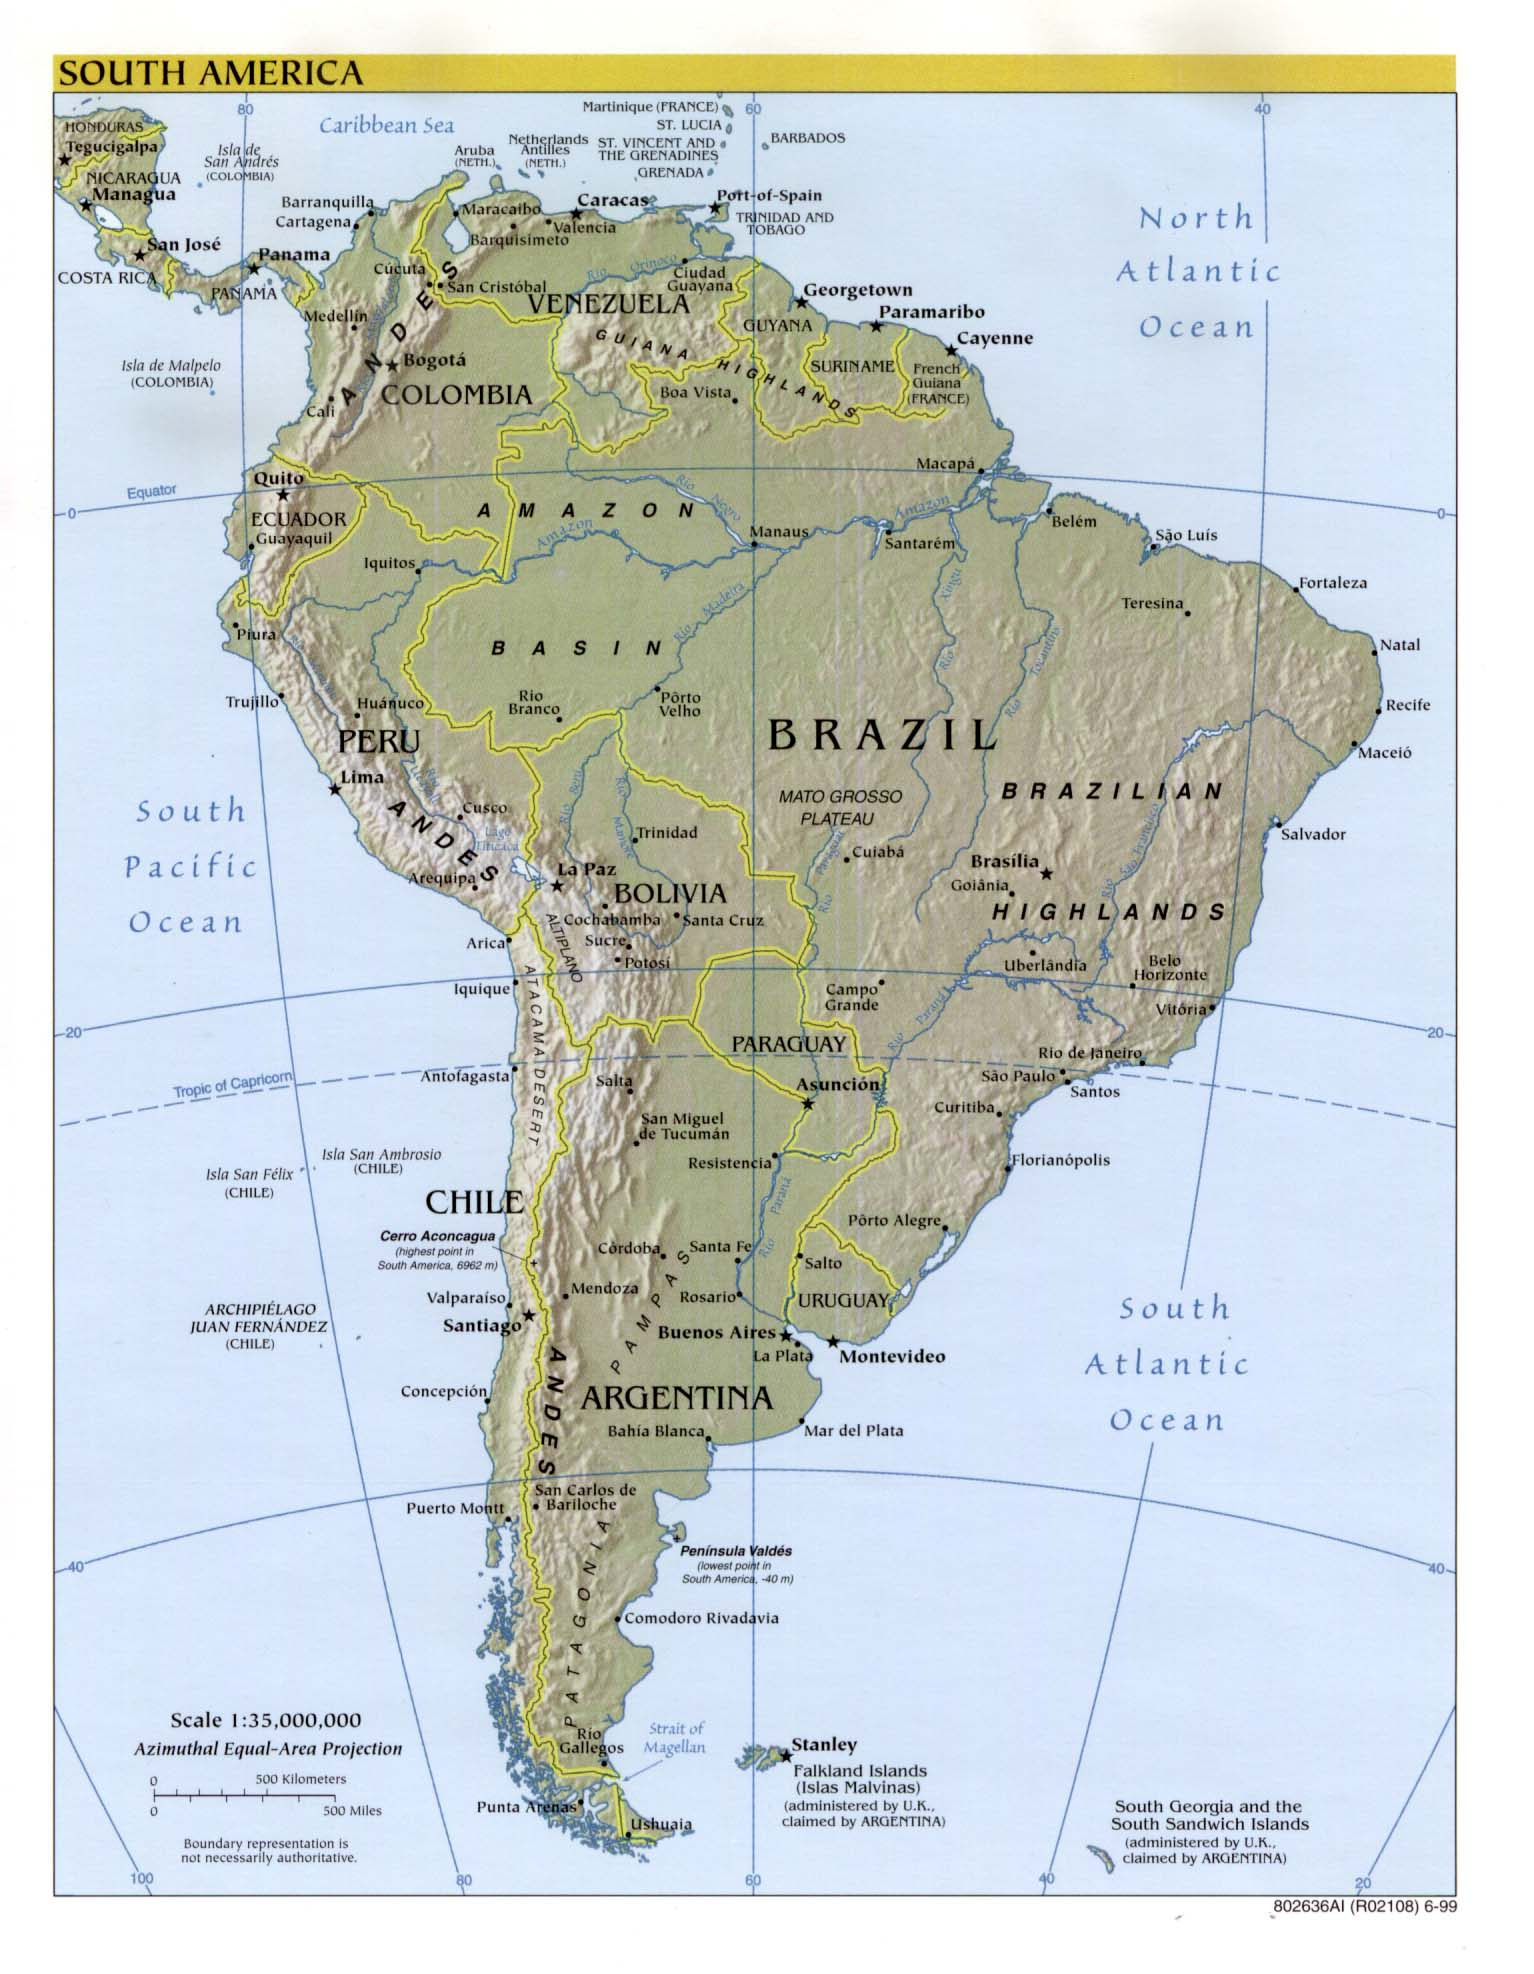 Map Of South America Continent. South America (Reference Map) 1999 Larger JPEG Image (267K)